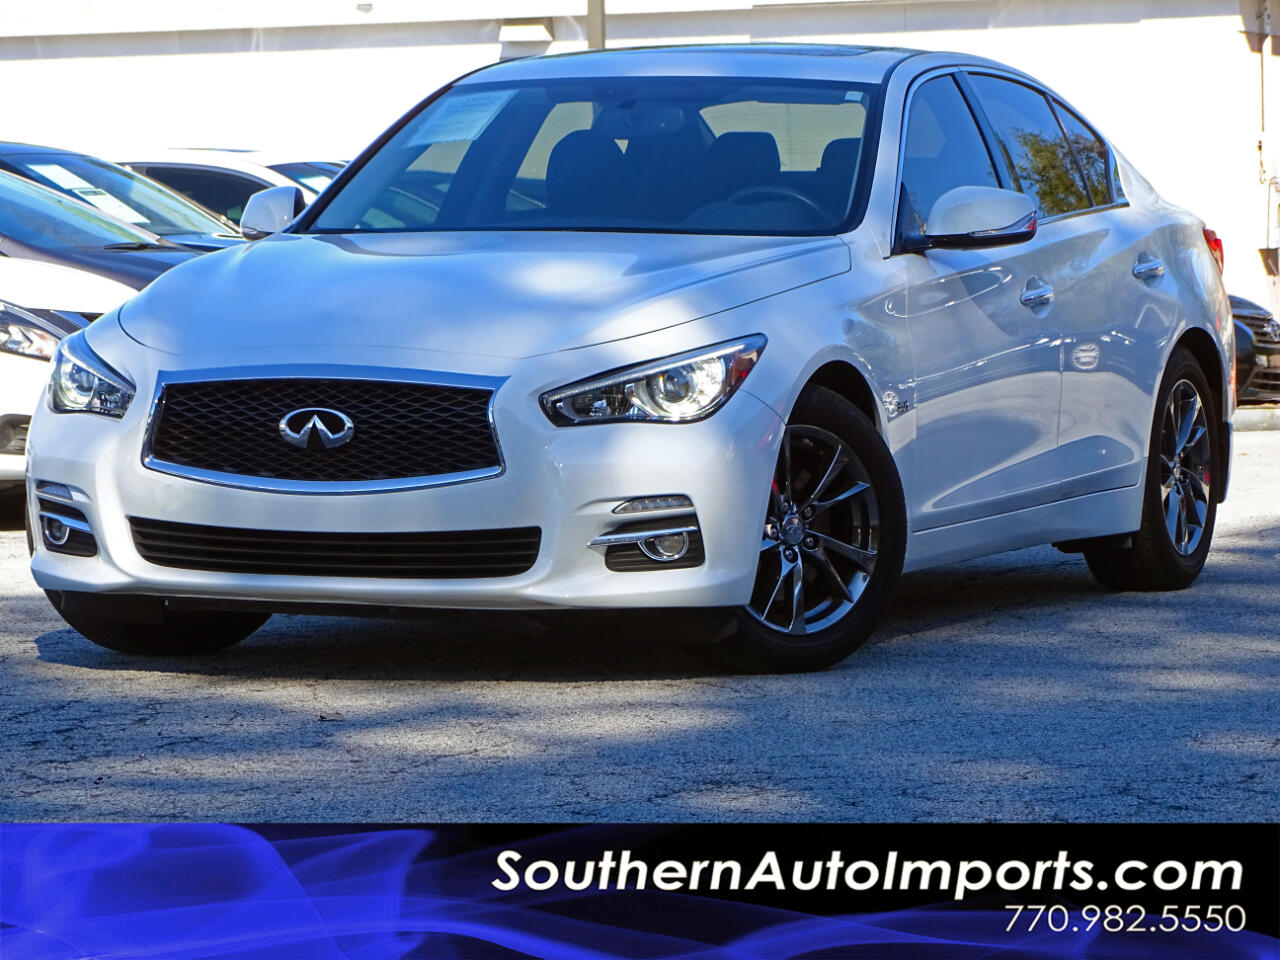 2017 Infiniti Q50 3.0t Signature Edition w/Navigation 1owner